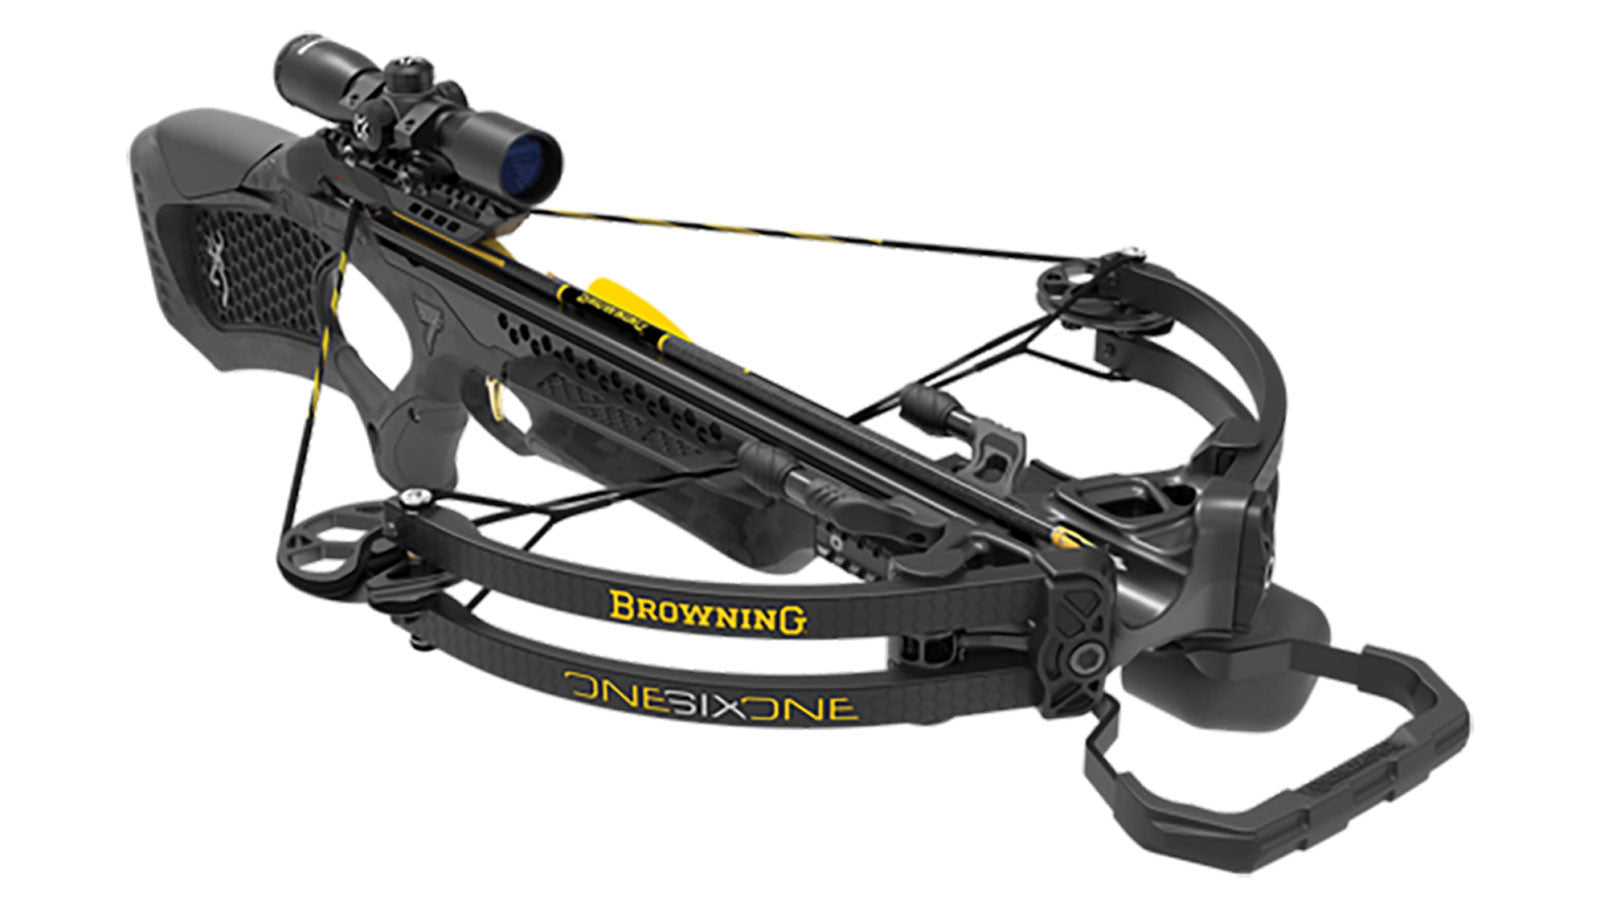 Barnett BROWNING ZERO7-161 Crossbow w/ 4x32 SCOPE - Universal Mania